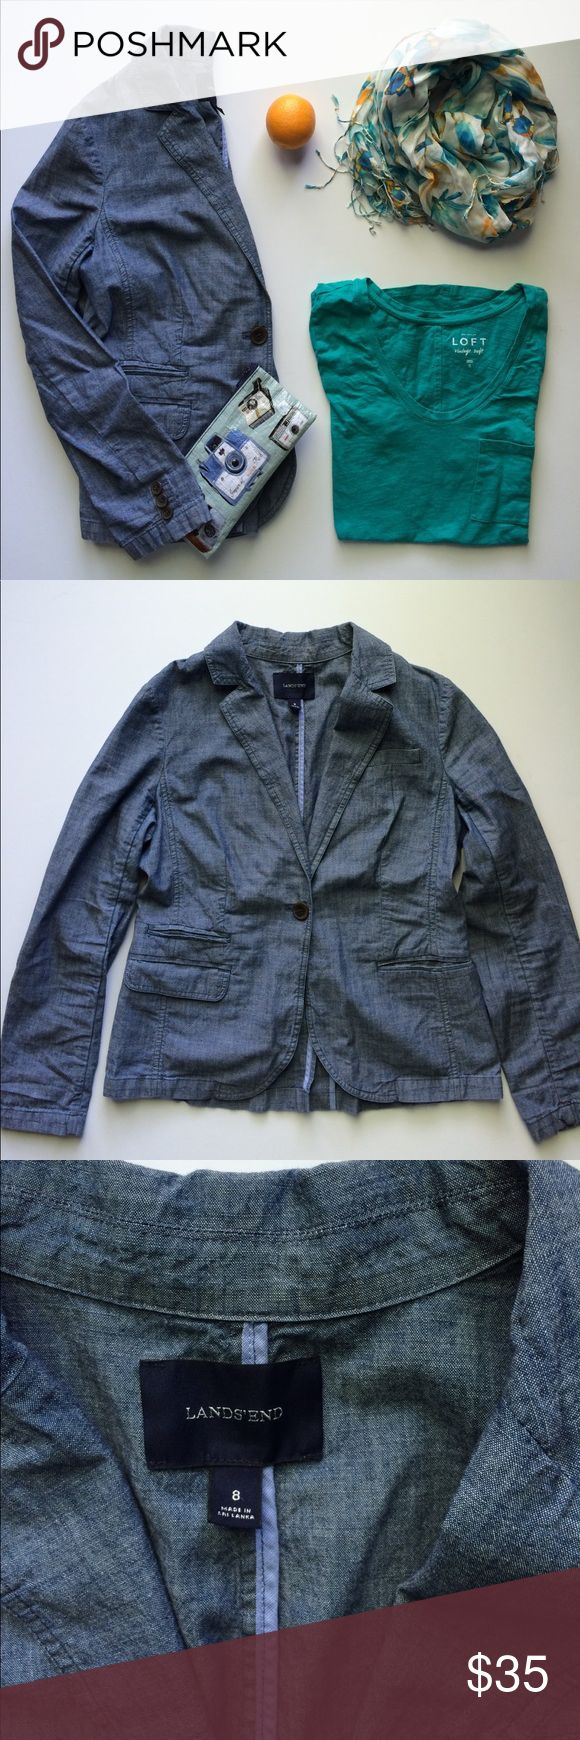 Lands' End Chambray Blazer Lands' End chambray blazer. Perfect for all you denim-heads and chambray enthusiasts! Loved, but in excellent condition. Simply just don't wear blazers anymore so those of you who do should scoop this one up! Lands' End Jackets & Coats Blazers